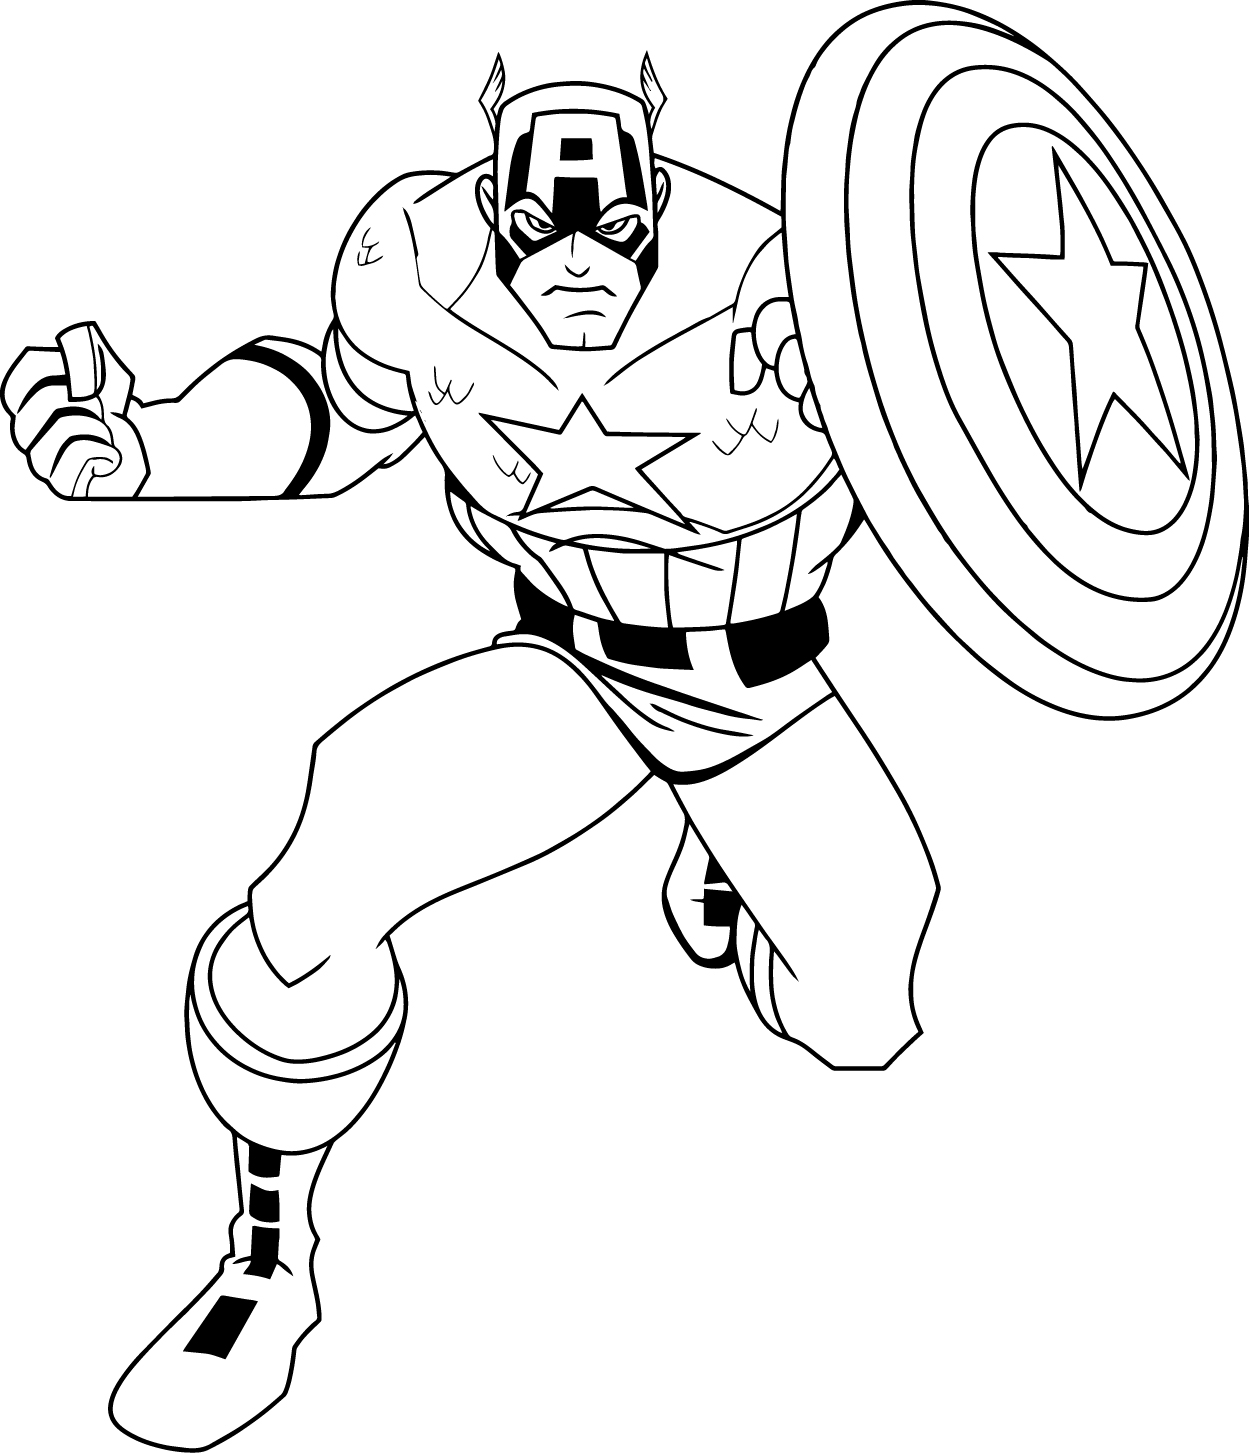 captian america coloring pages free printable captain america coloring pages for kids coloring pages america captian